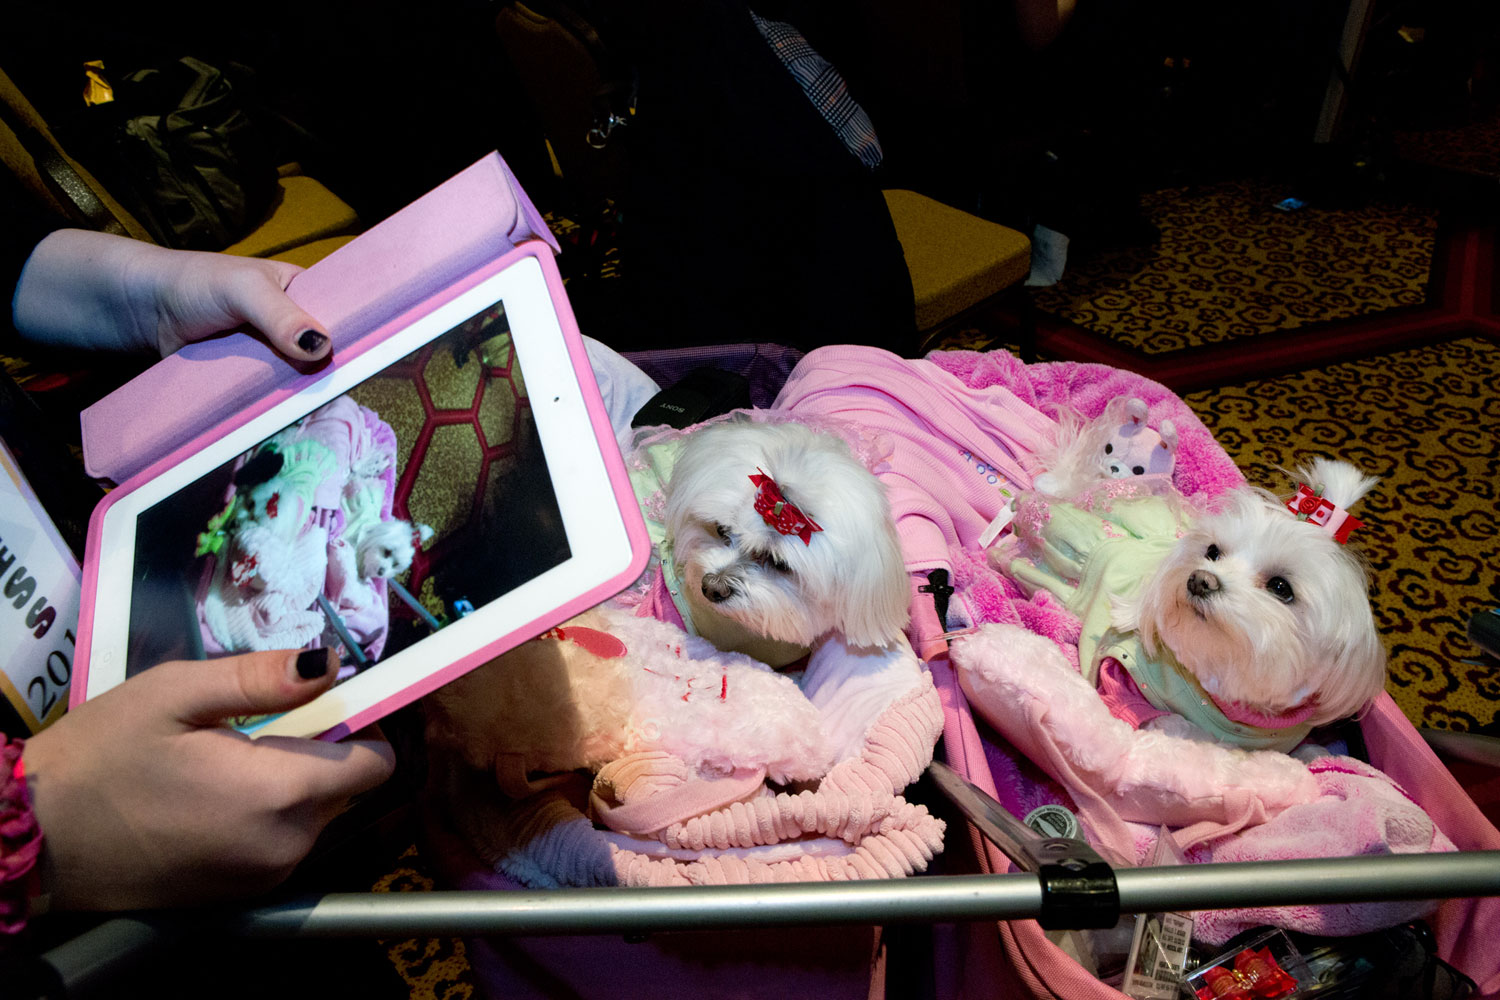 Taffany and Mia, Maltese companions to Tamber Hunter, at the NYC Doggies and Tiaras Pageant 2013 at the New Yorker Hotel, held to benefit the Inky Blue Sea Animal Rescue group.